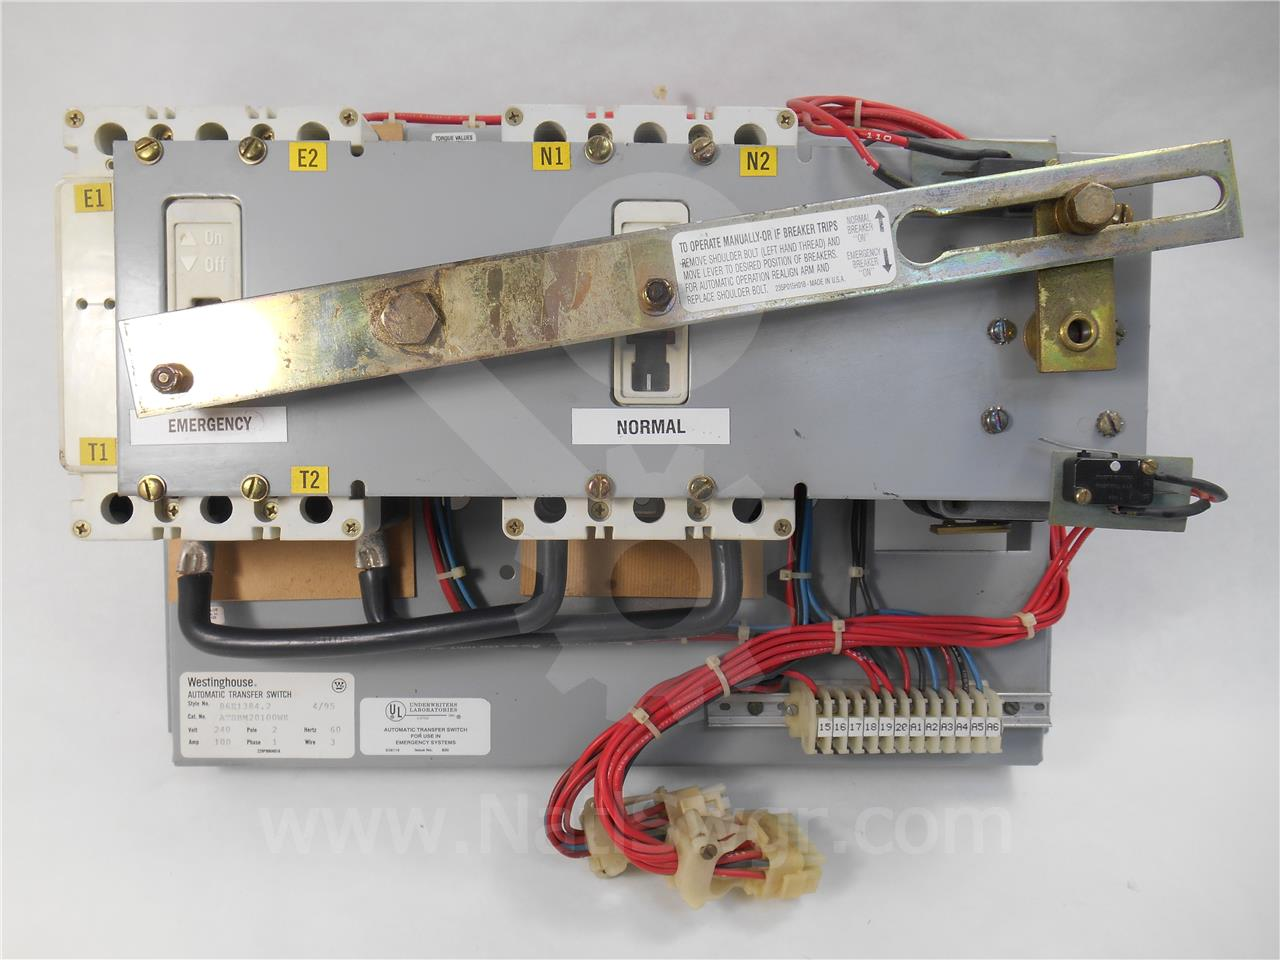 012 987 wh low voltage automatic transfer switch national switchgear cutler hammer automatic transfer switch wiring diagram at nearapp.co